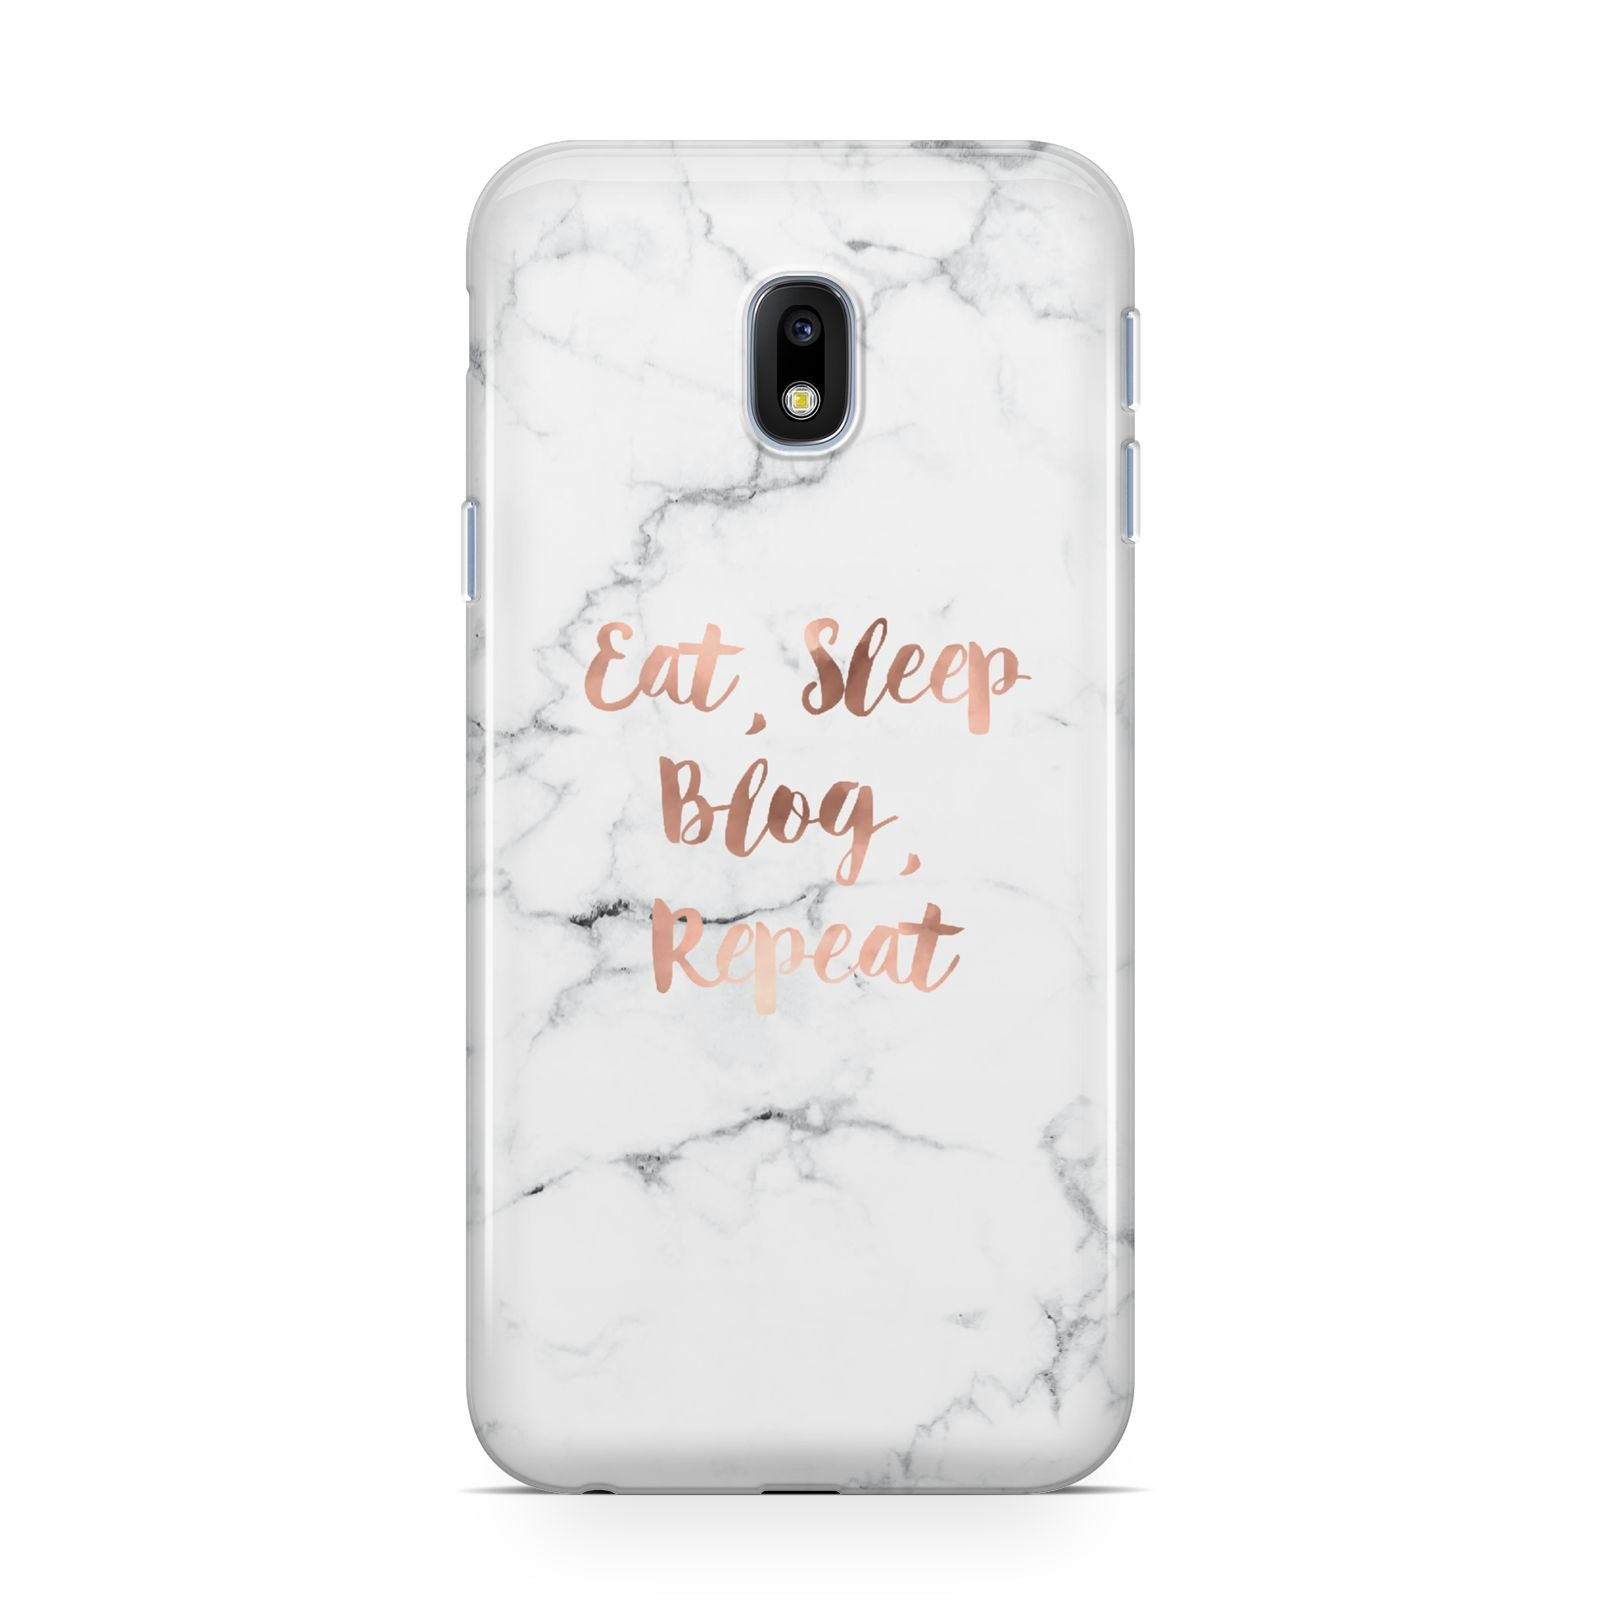 Eat Sleep Blog Repeat Marble Effect Samsung Galaxy J3 2017 Case